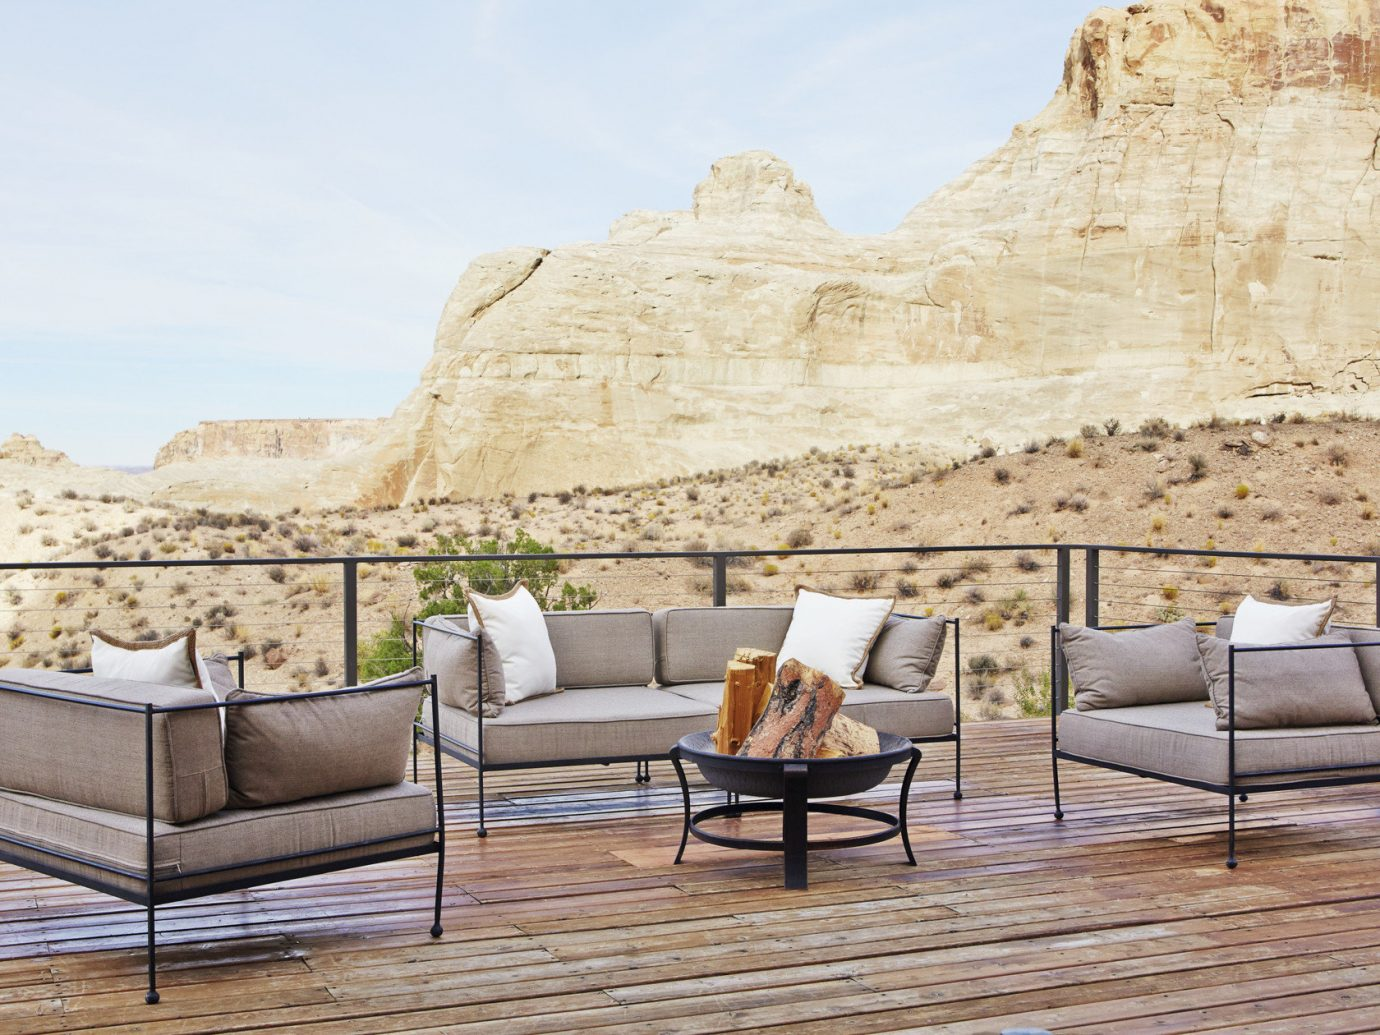 Lounge area on patio with view of desert scape